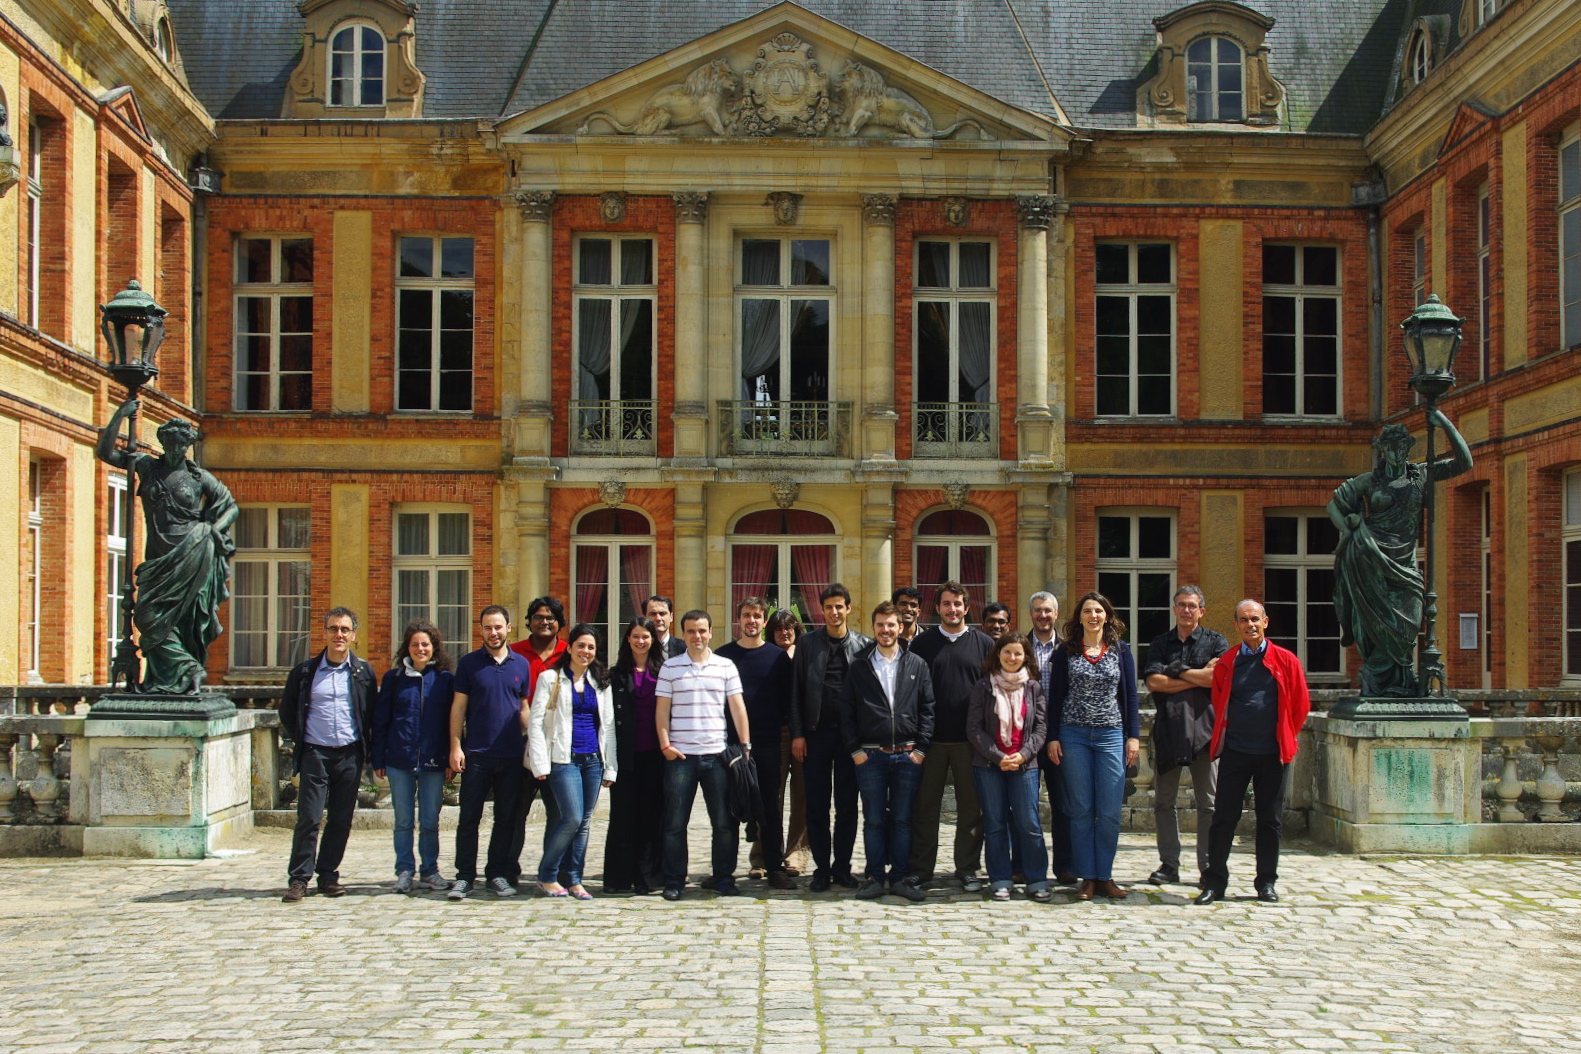 Team picture at Dampierre Castle,  June 22, 2012